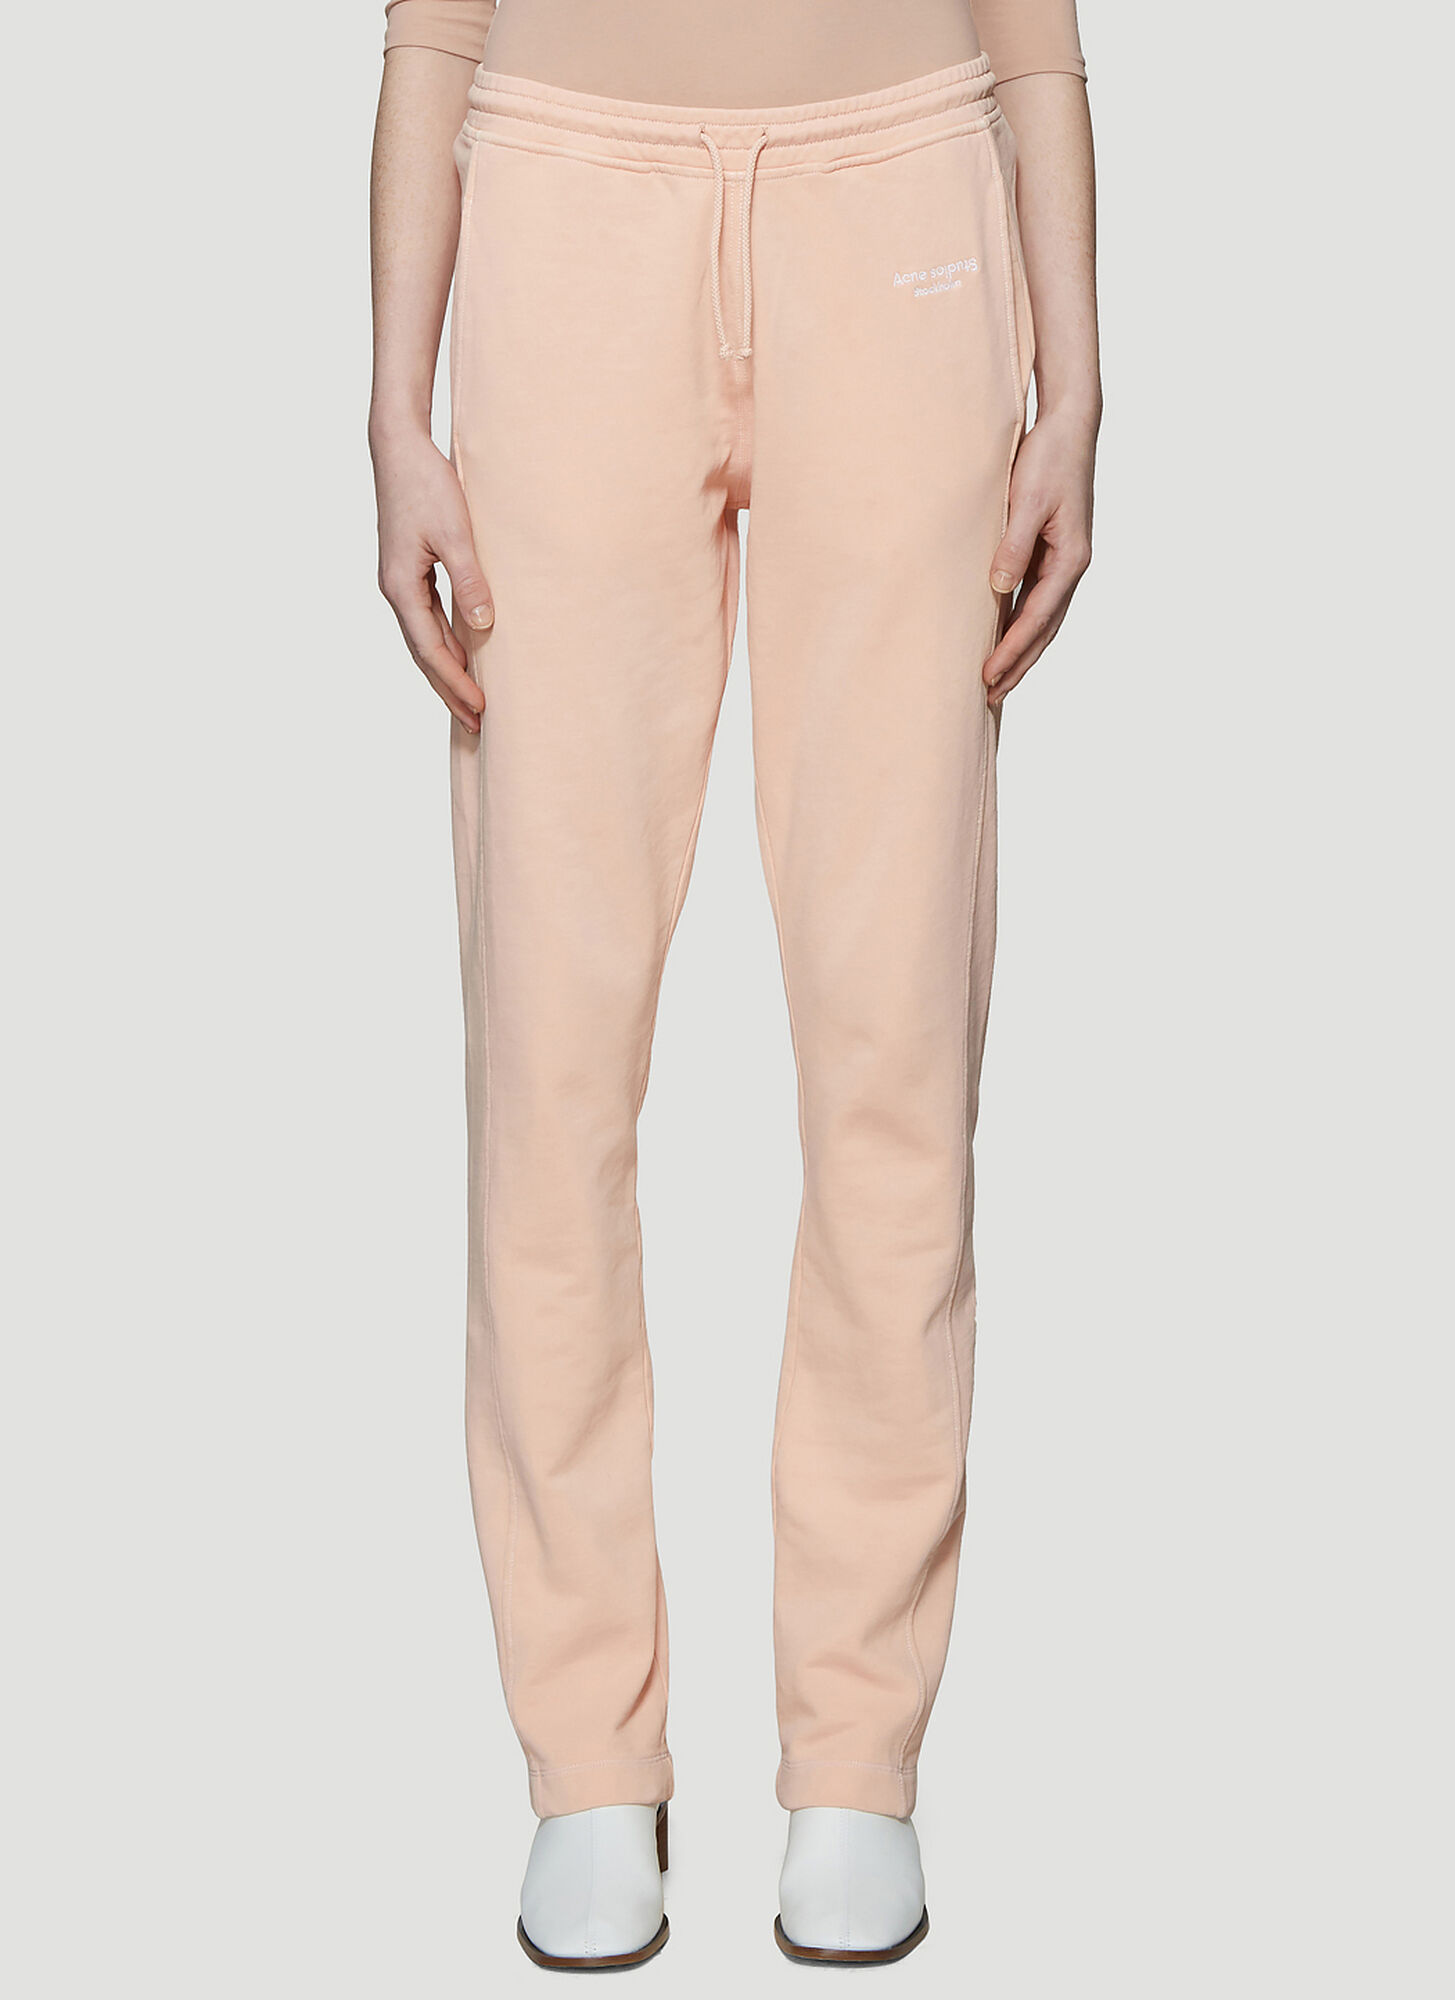 Acne Studios Track Pants in Pale Pink